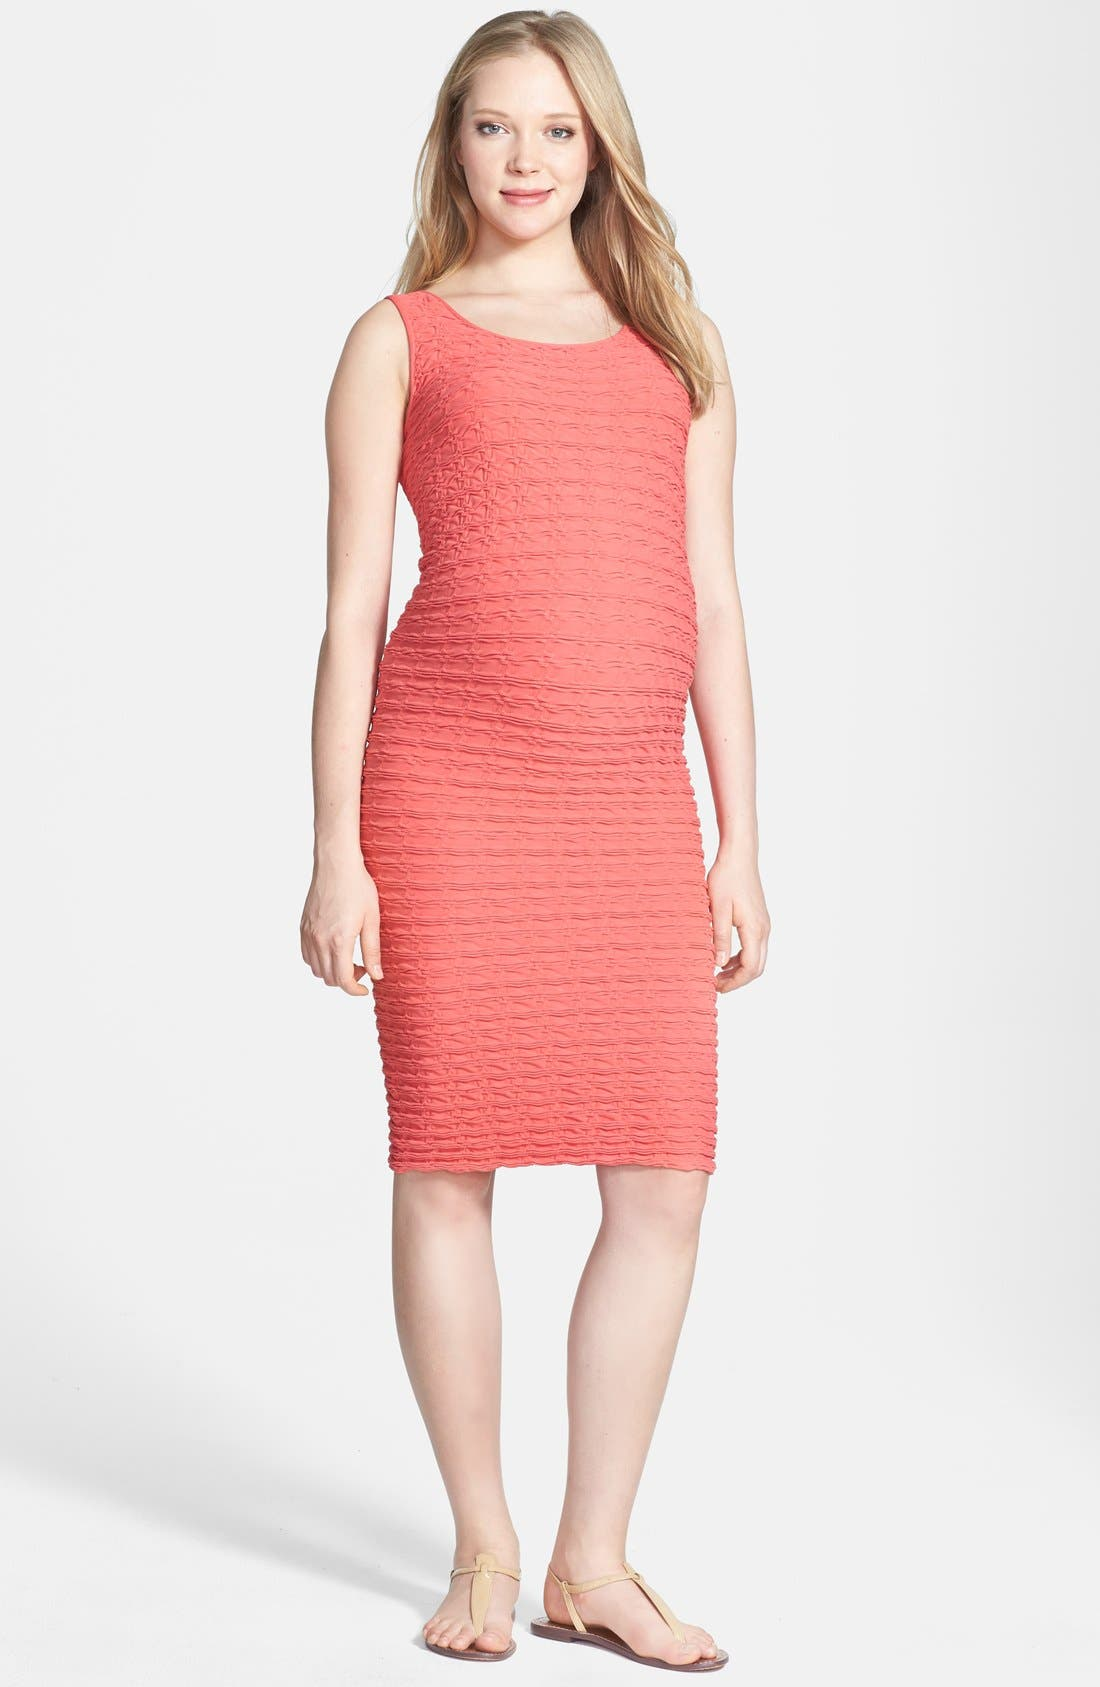 TEES BY TINA Crinkle Tank Maternity Dress